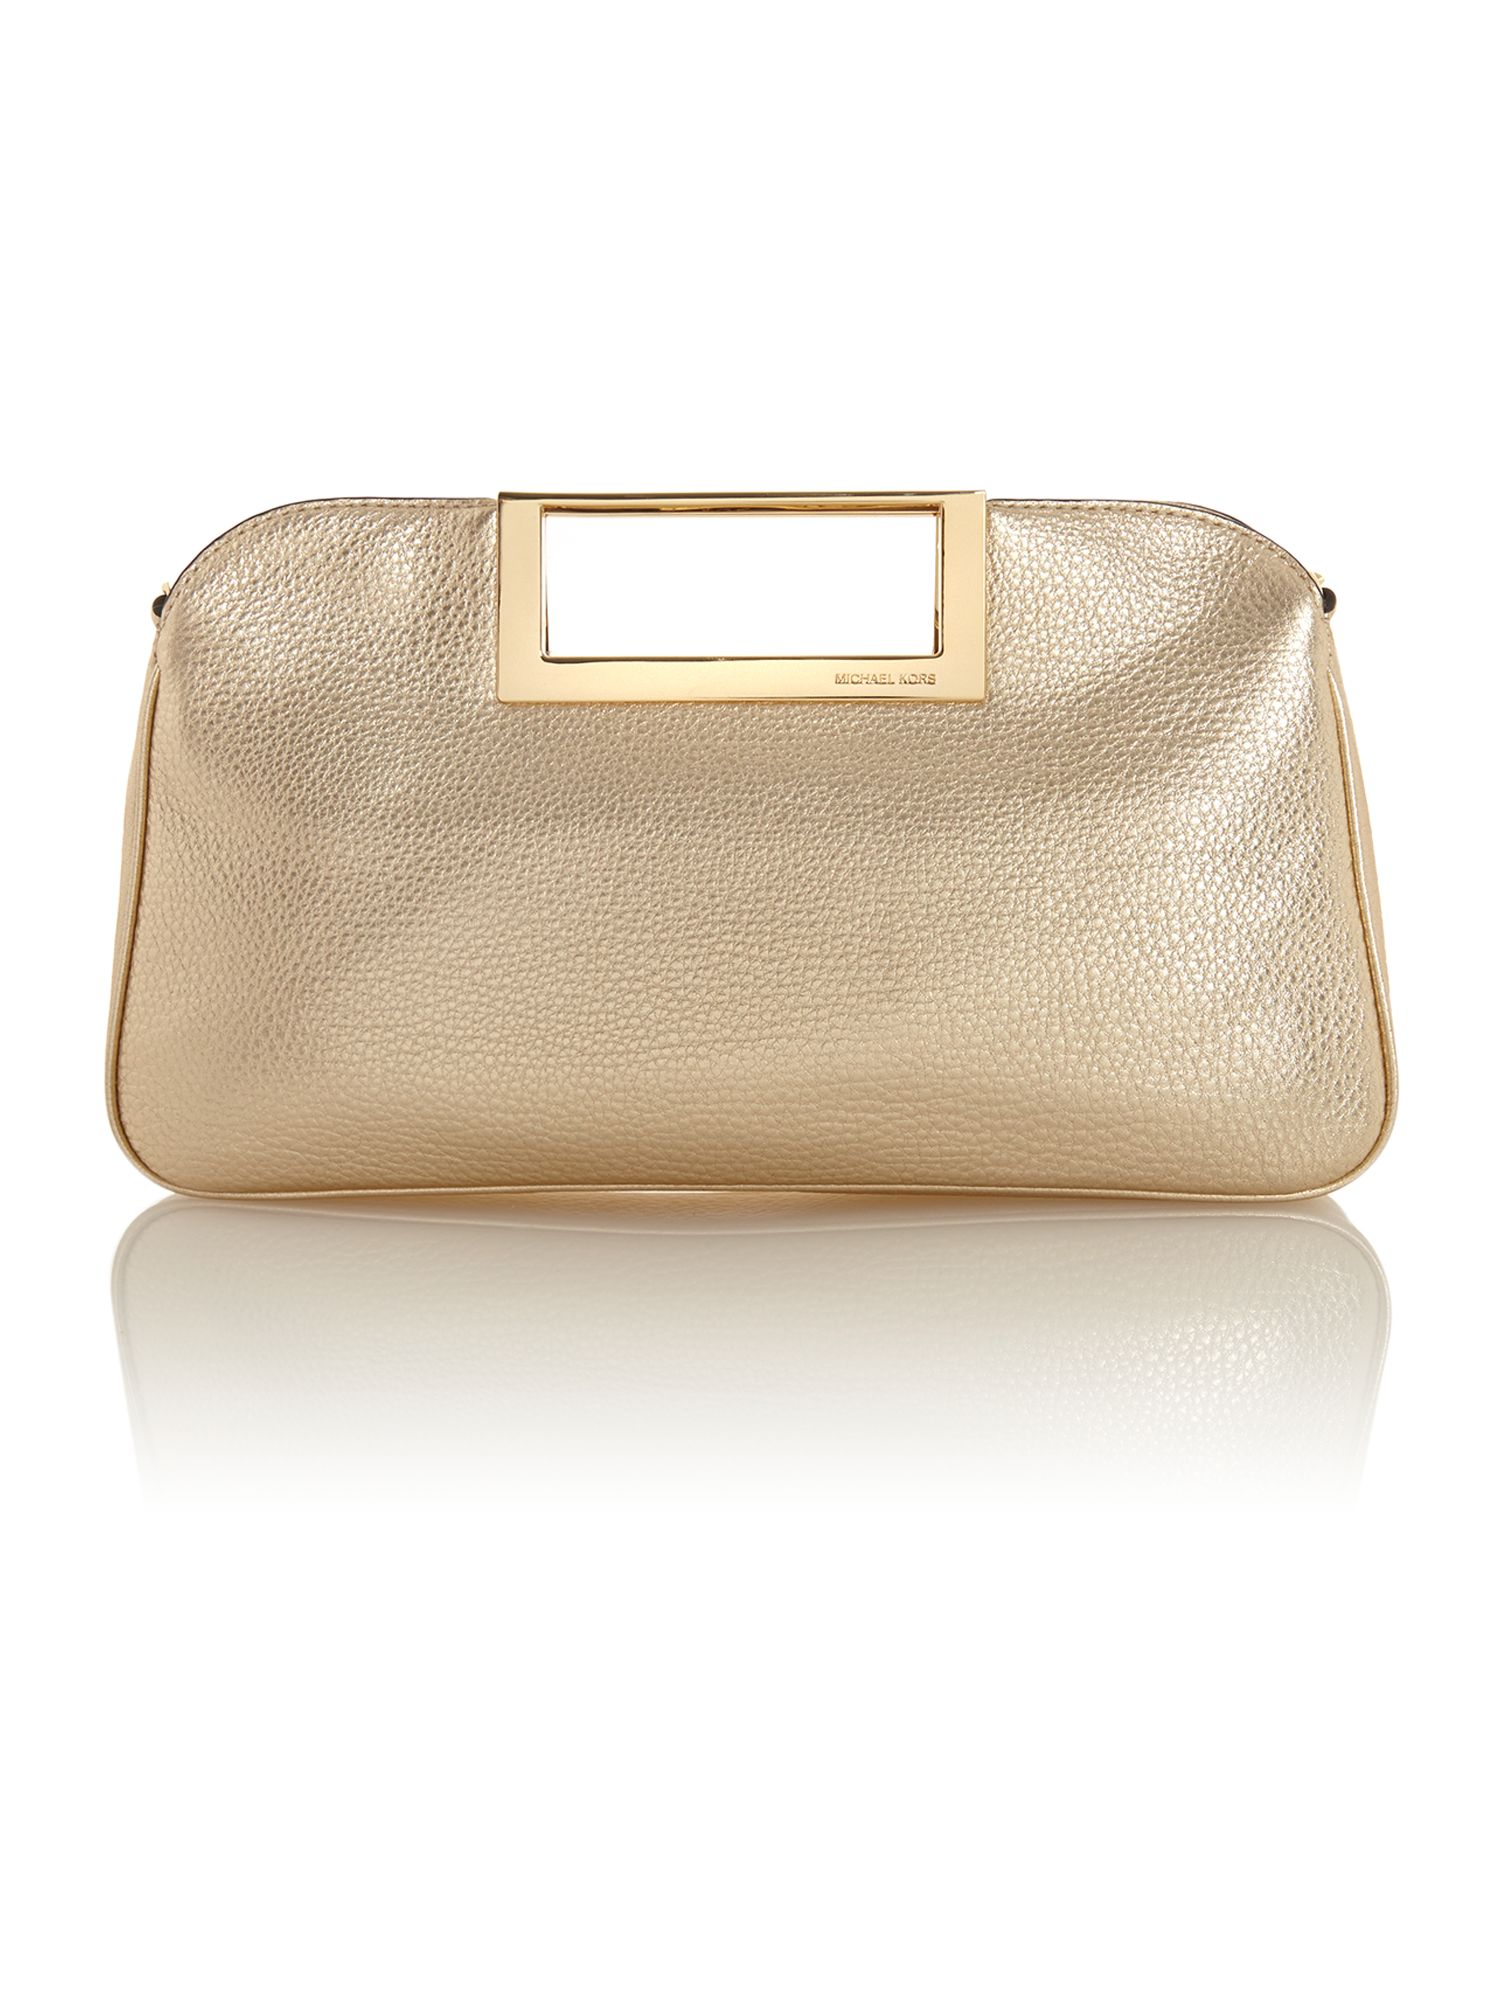 Berkley gold shoulder bag